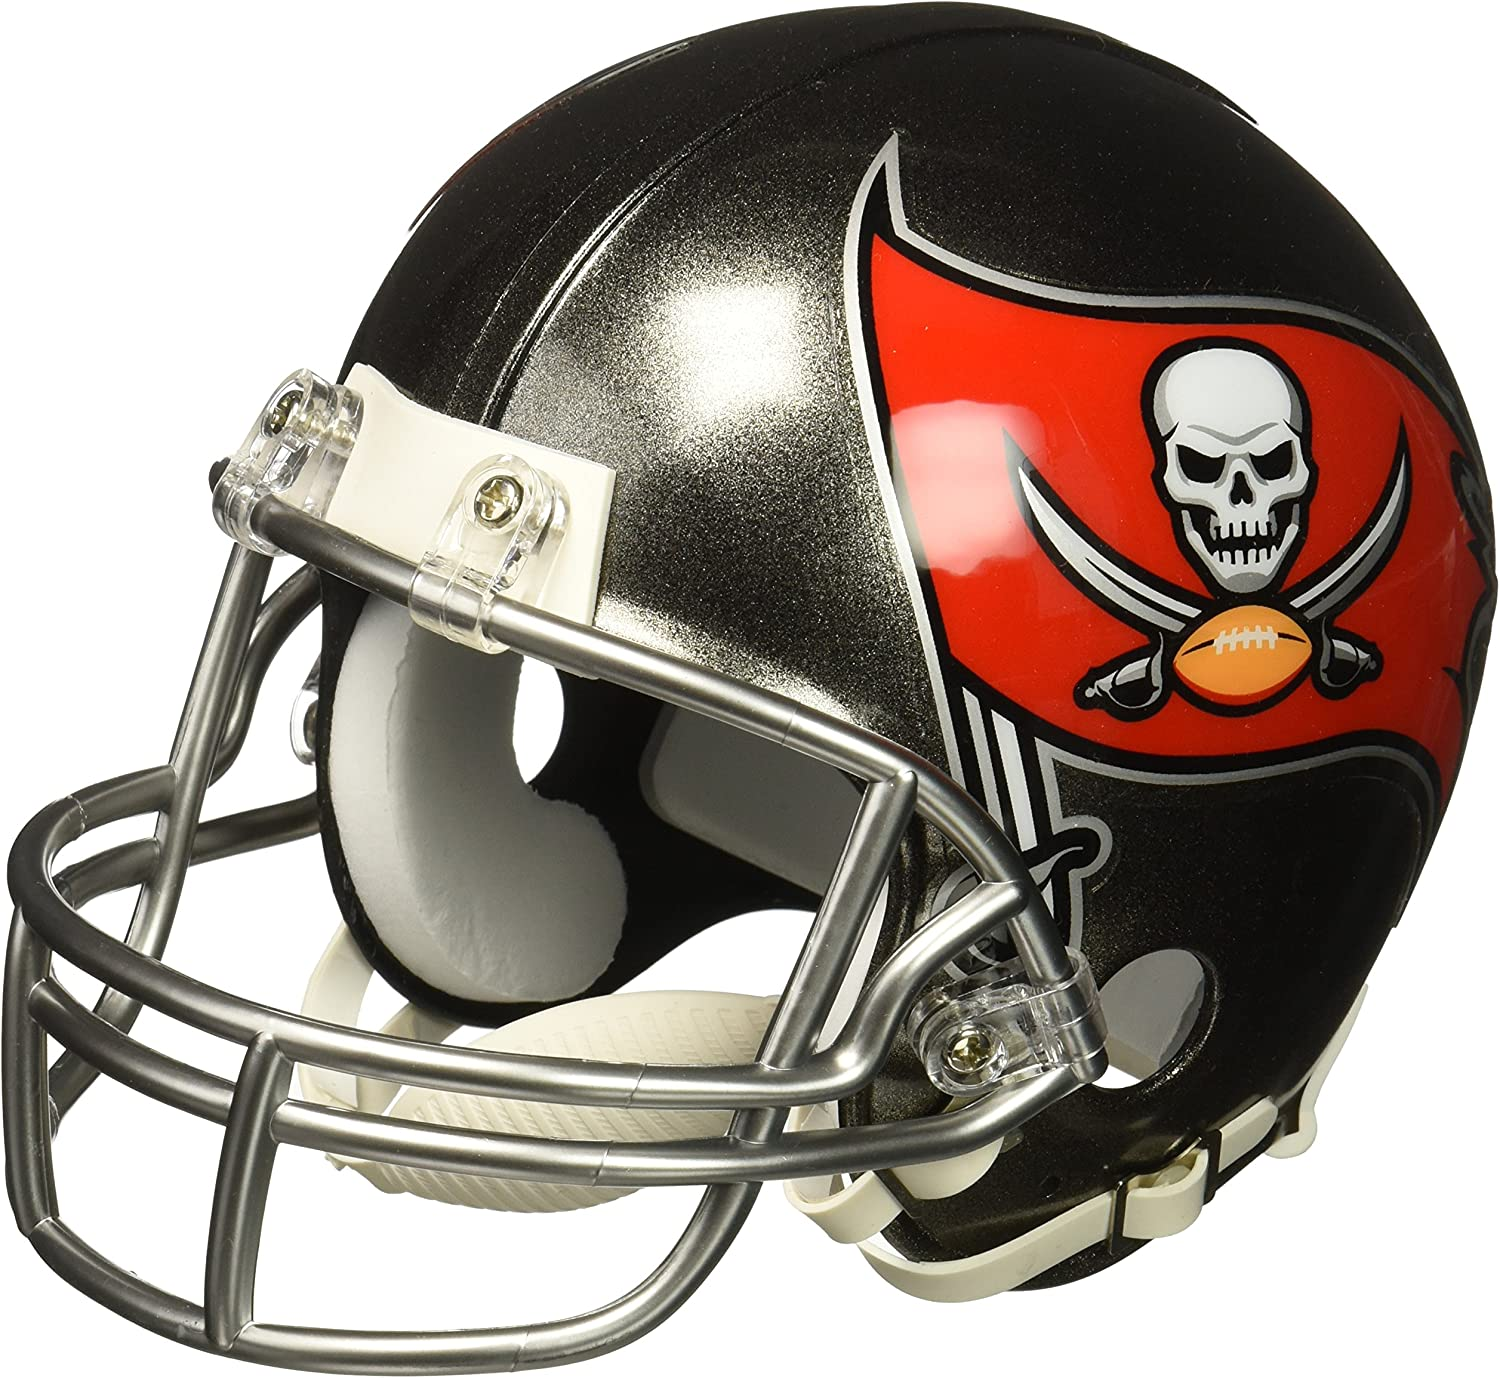 amazon com nfl tampa bay buccaneers replica mini helmet medium black red sports related collectible mini helmets sports outdoors nfl tampa bay buccaneers replica mini helmet medium black red